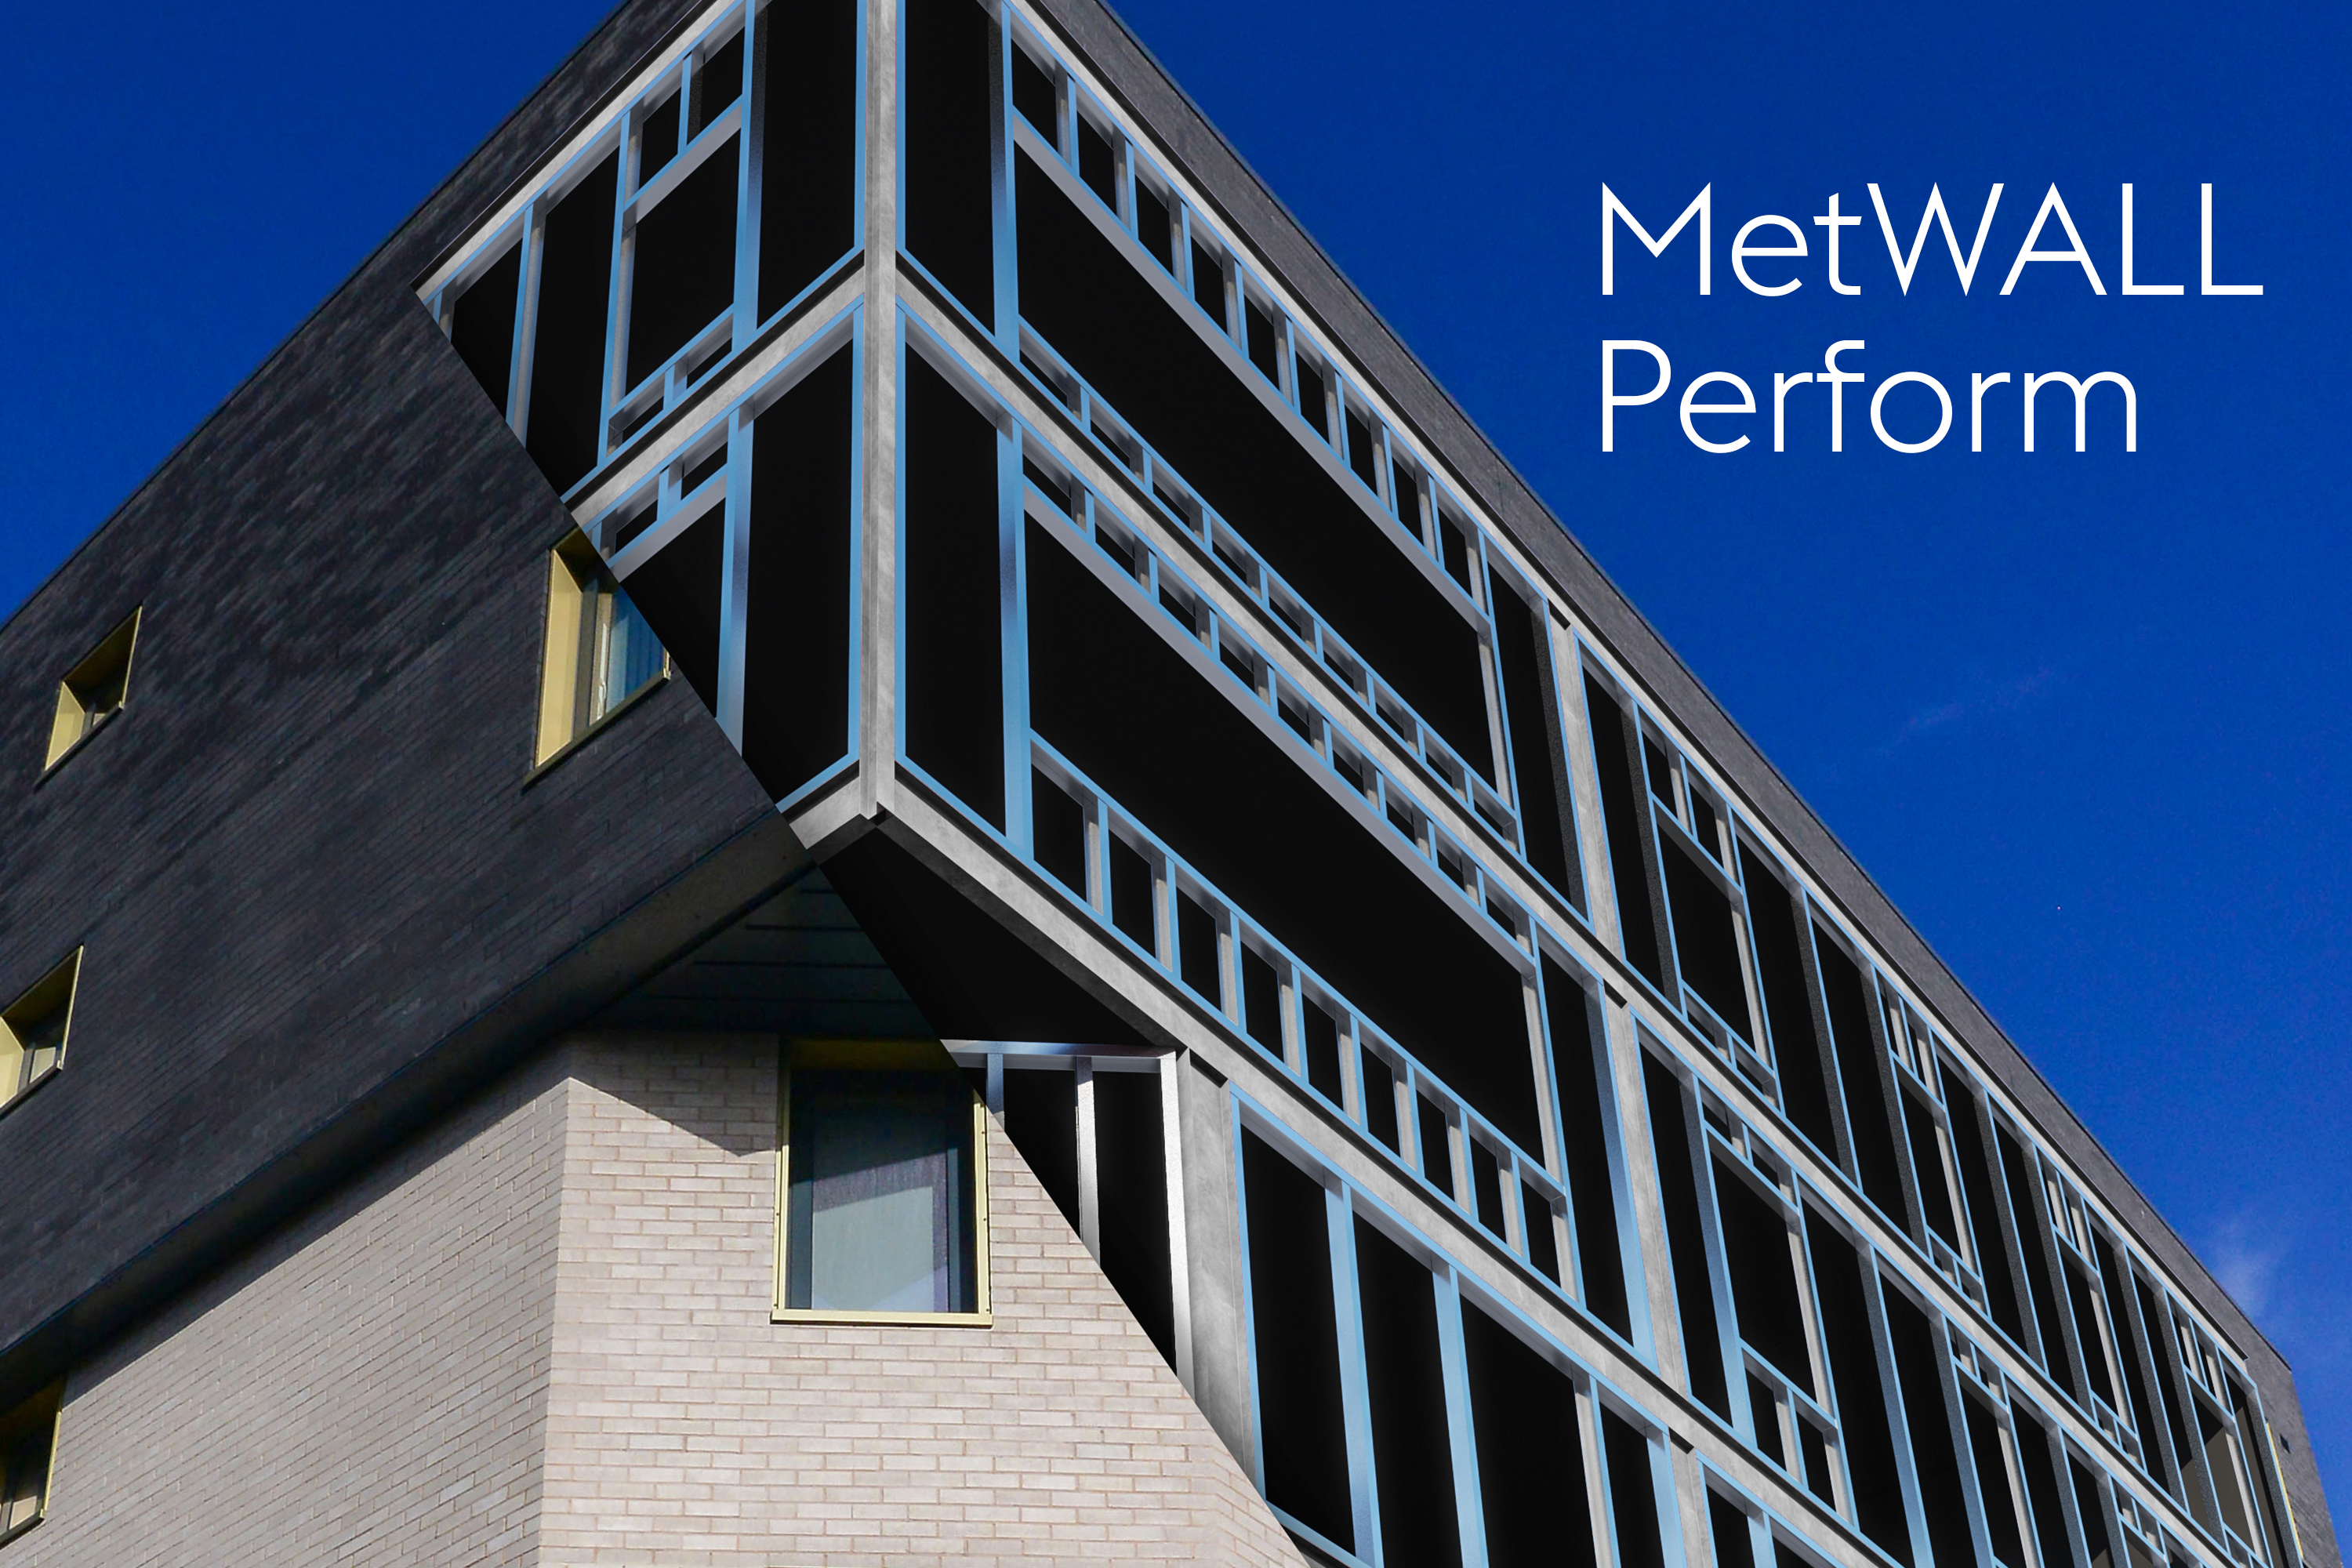 MetWALL Perform, our 30 year warranty